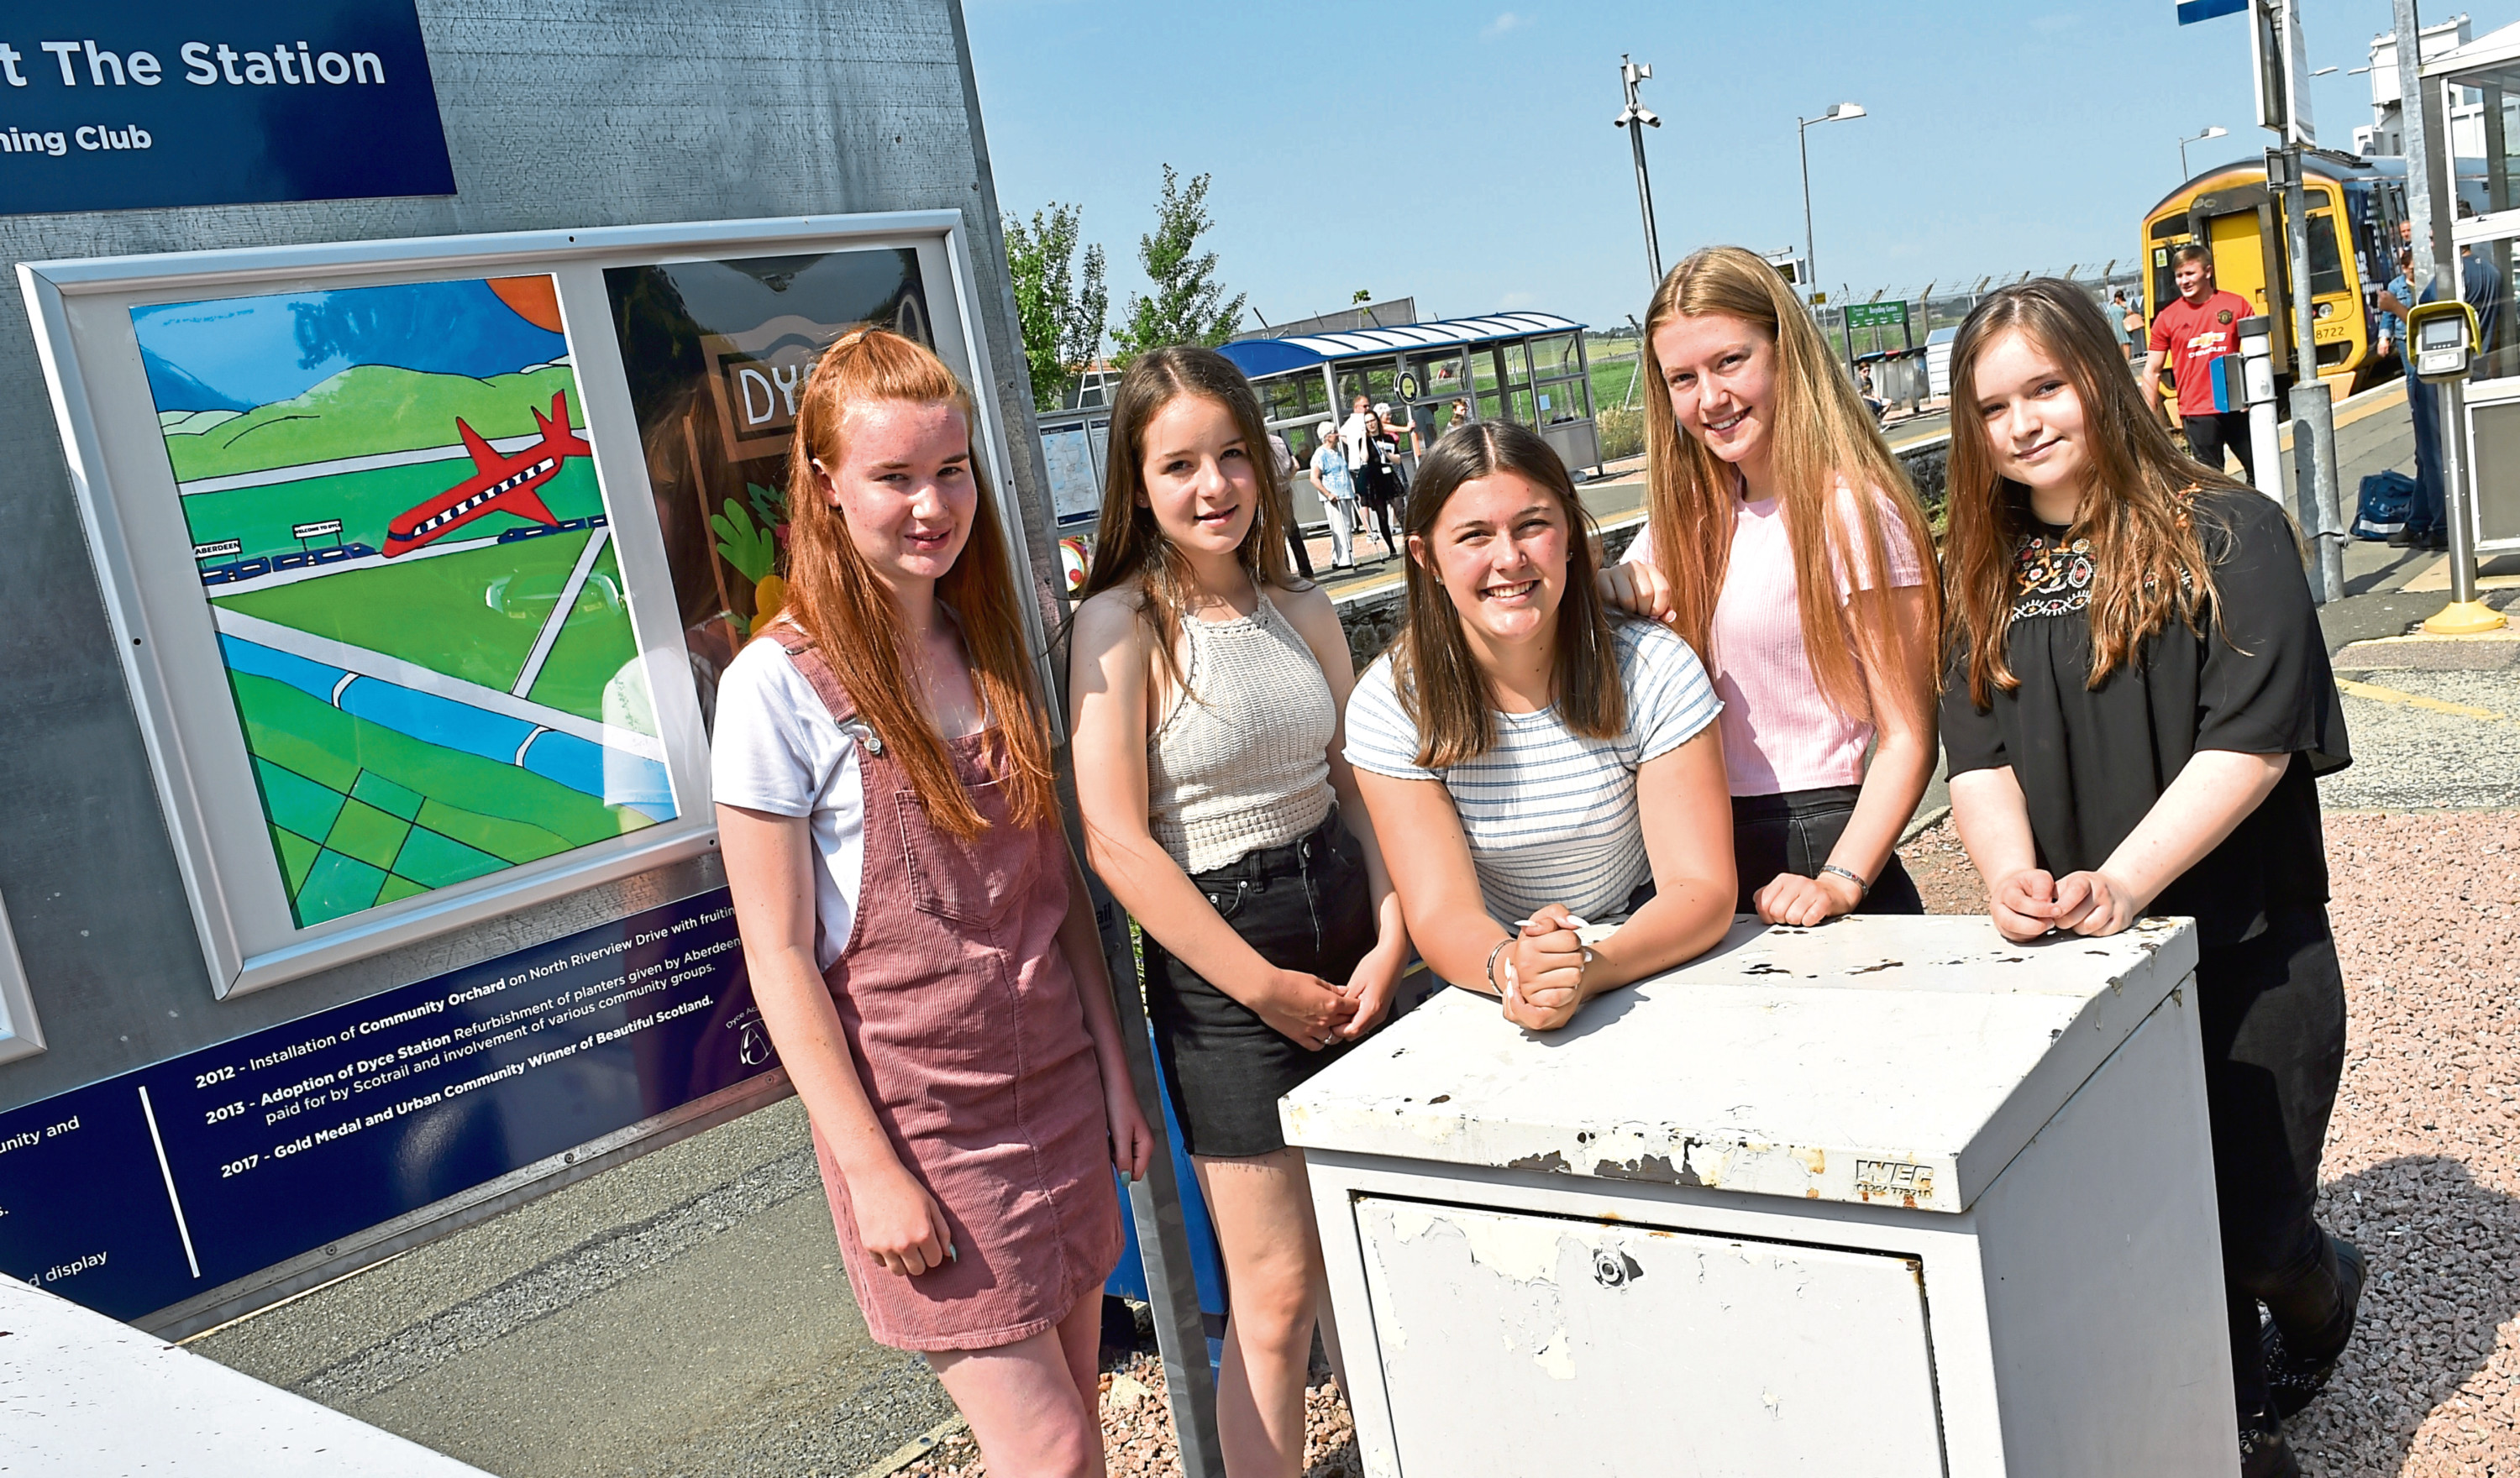 Kristi Mason, Leah Danraj, Kayla Spence, Hazel Emslie and Anna Coleman at Dyce station with the posters